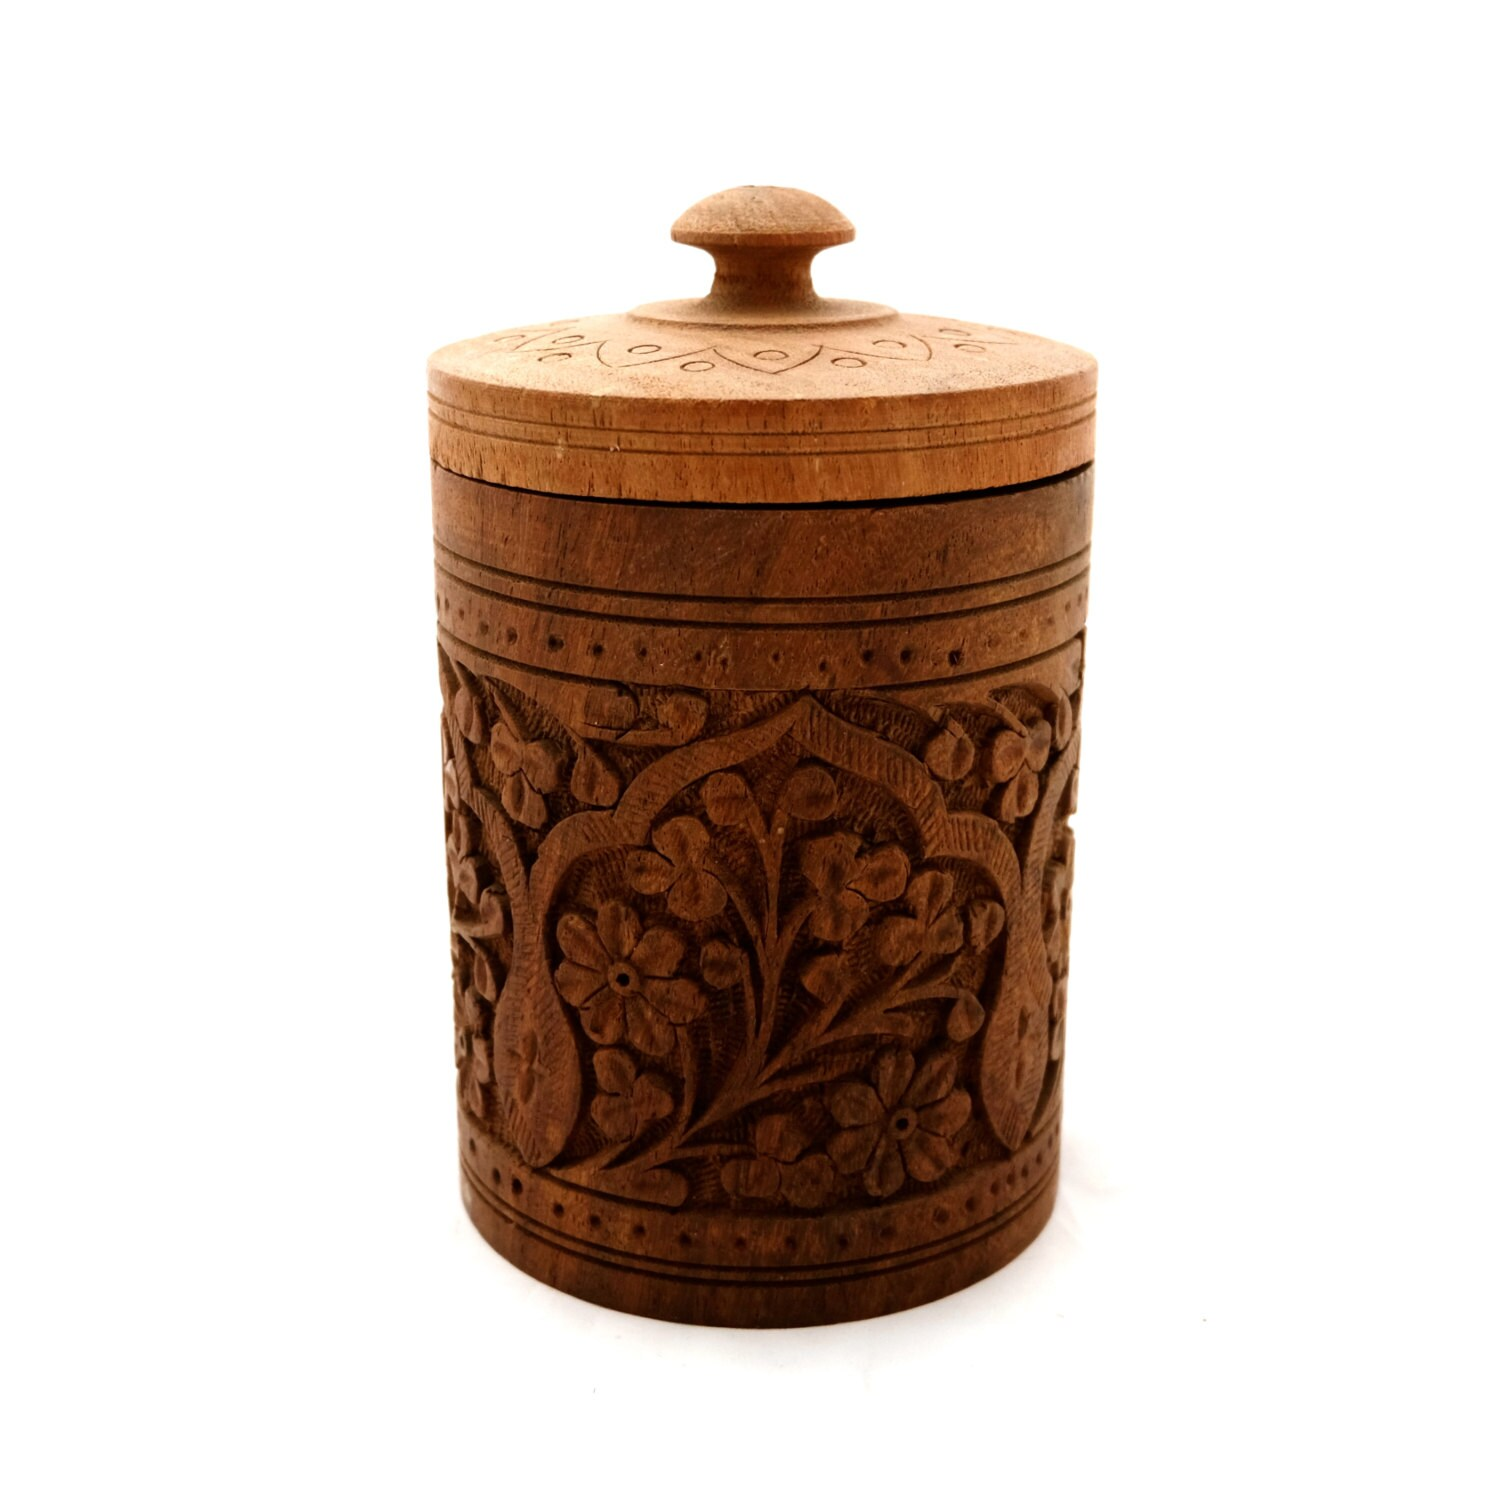 Round Decorative Boxes: Vintage Tall Round Wooden Box Wooden Barrel Box Decorative